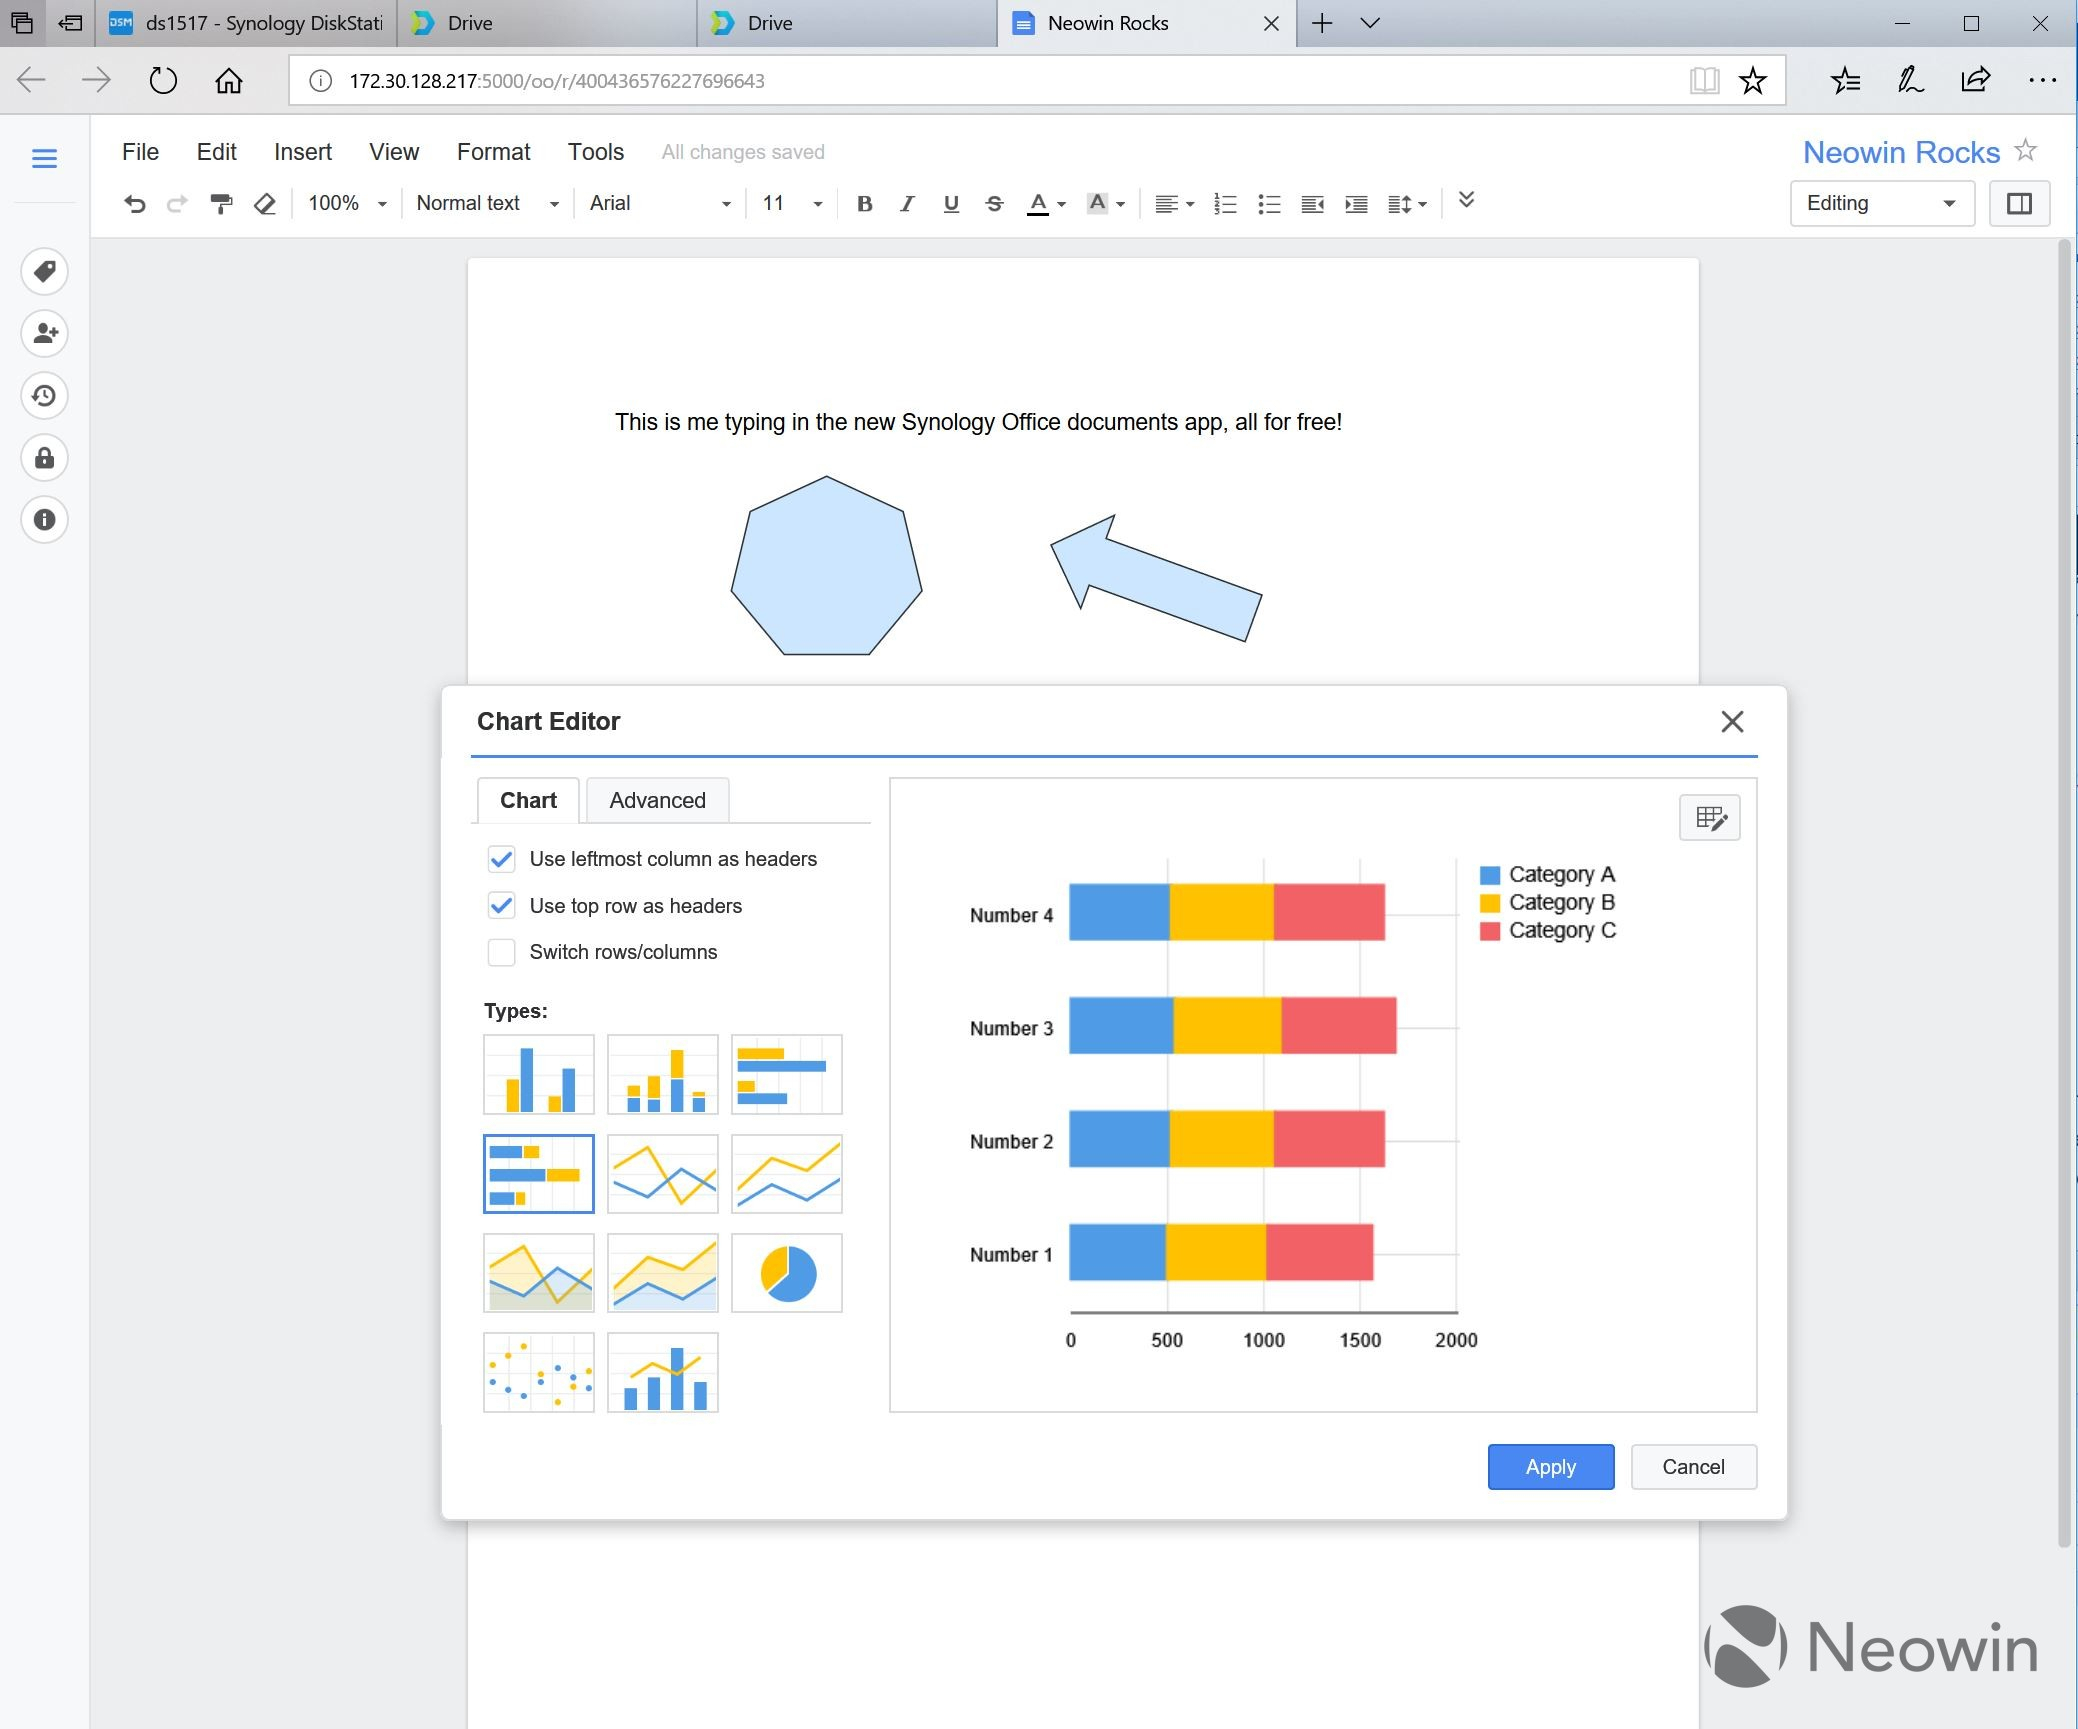 Synology Spreadsheet For Review Of Three New Synology Applications: Drive, Moments, And